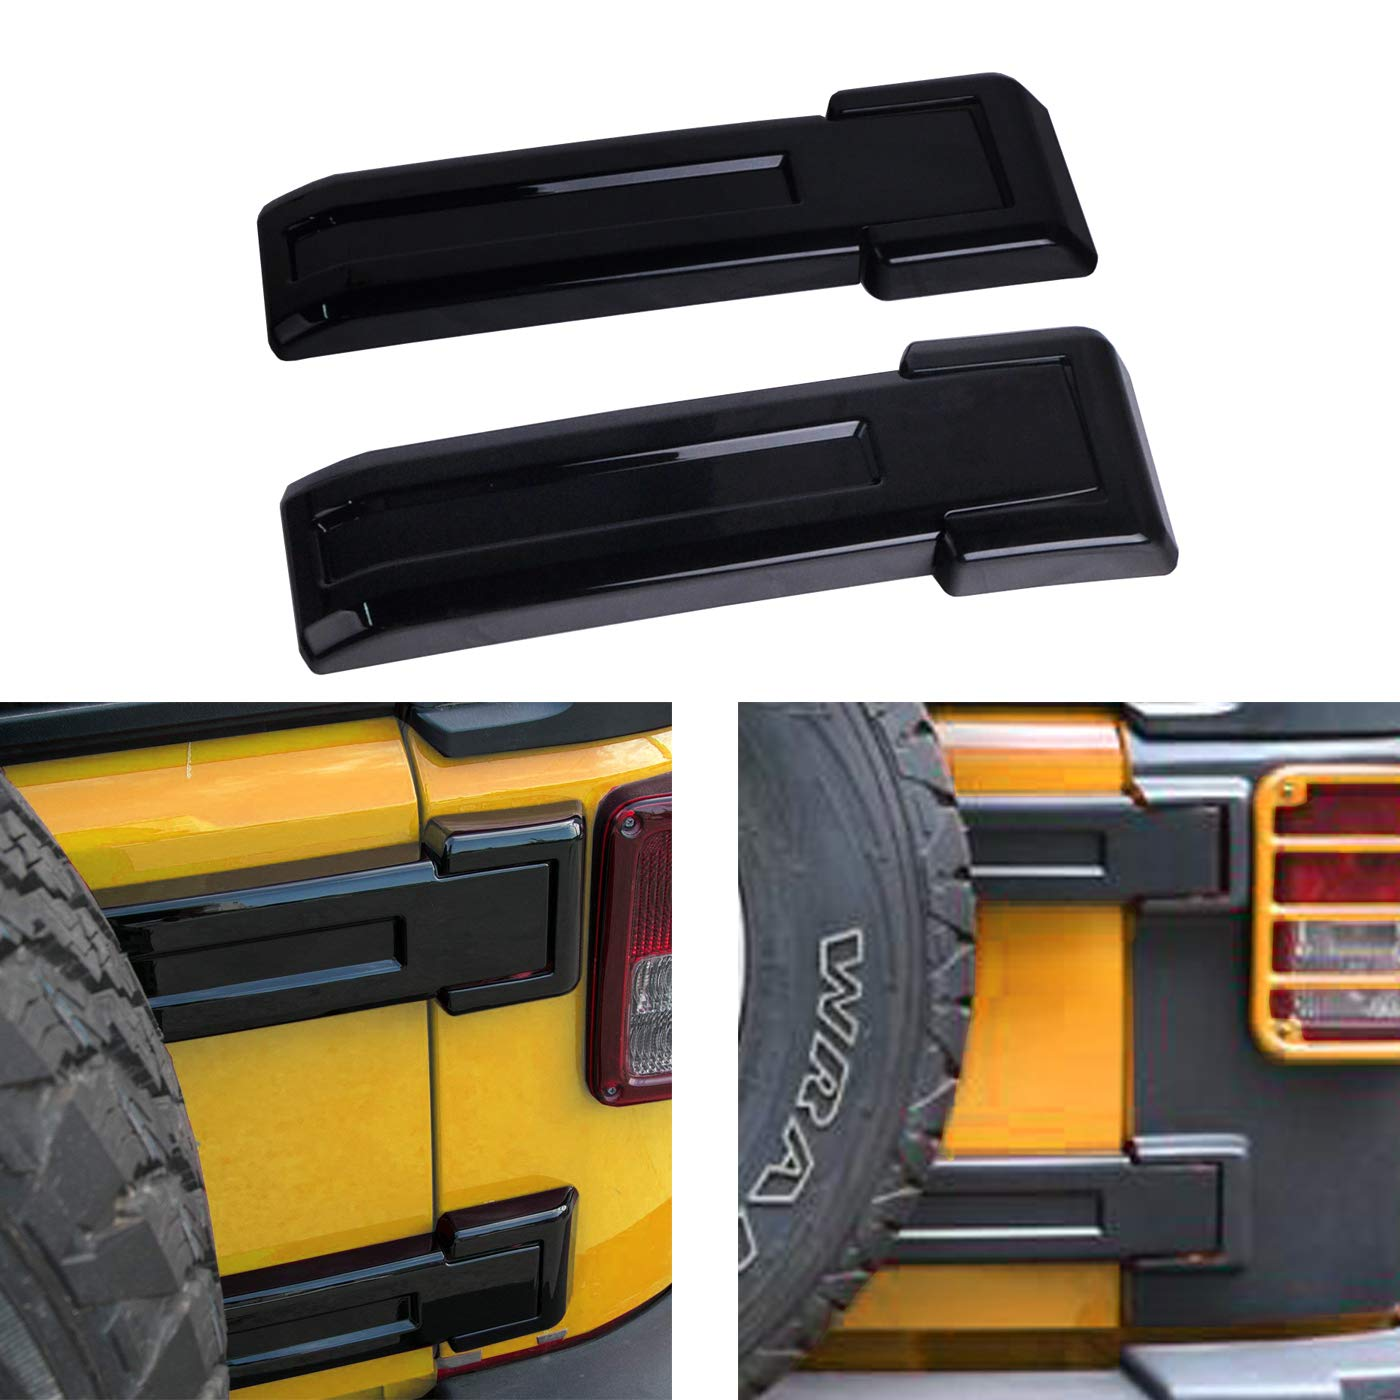 OMOTOR Black Tailgate Hinge Trim Covers fit for 2007-2018 Jeep JK Wrangler & Unlimited